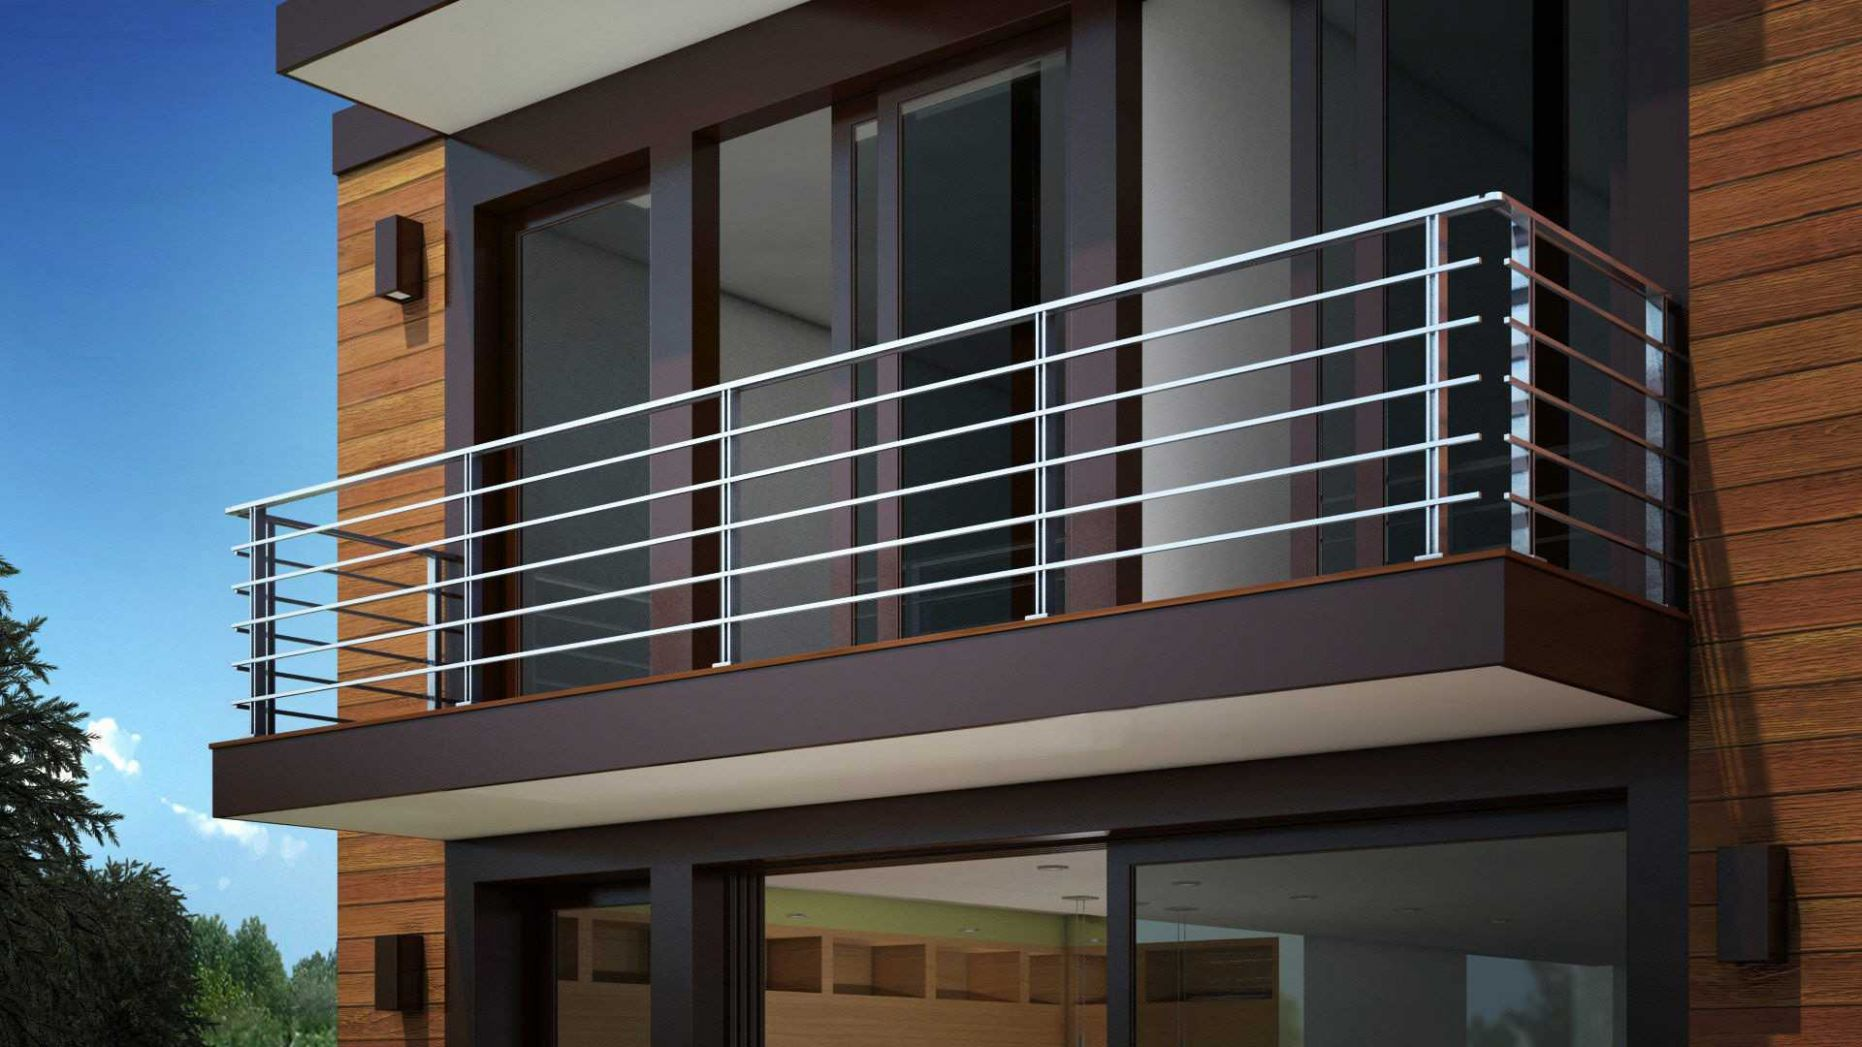 Balcony Railing Ideas Model 11 Cozy Decorating Home Elements And ..